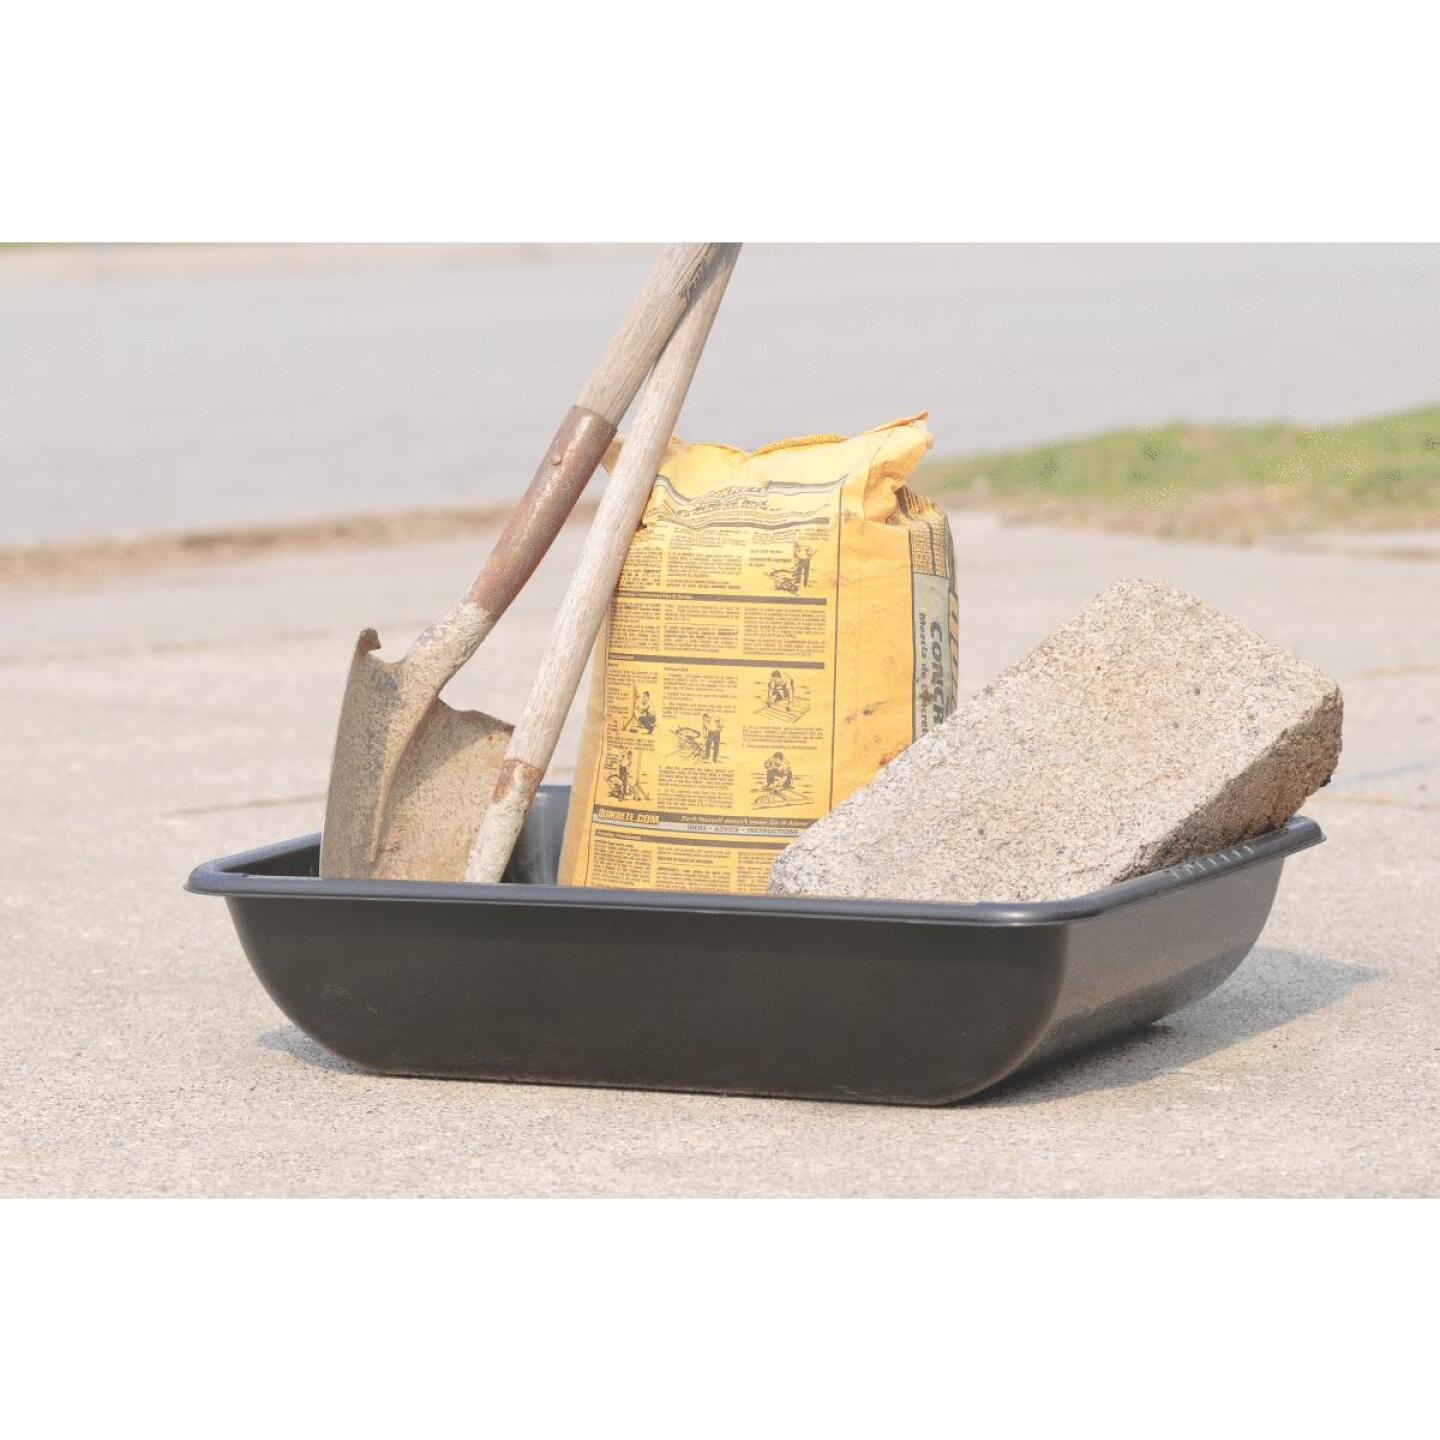 Heavy-Duty Large 37.6 In. Concrete Mixing Tub Image 21